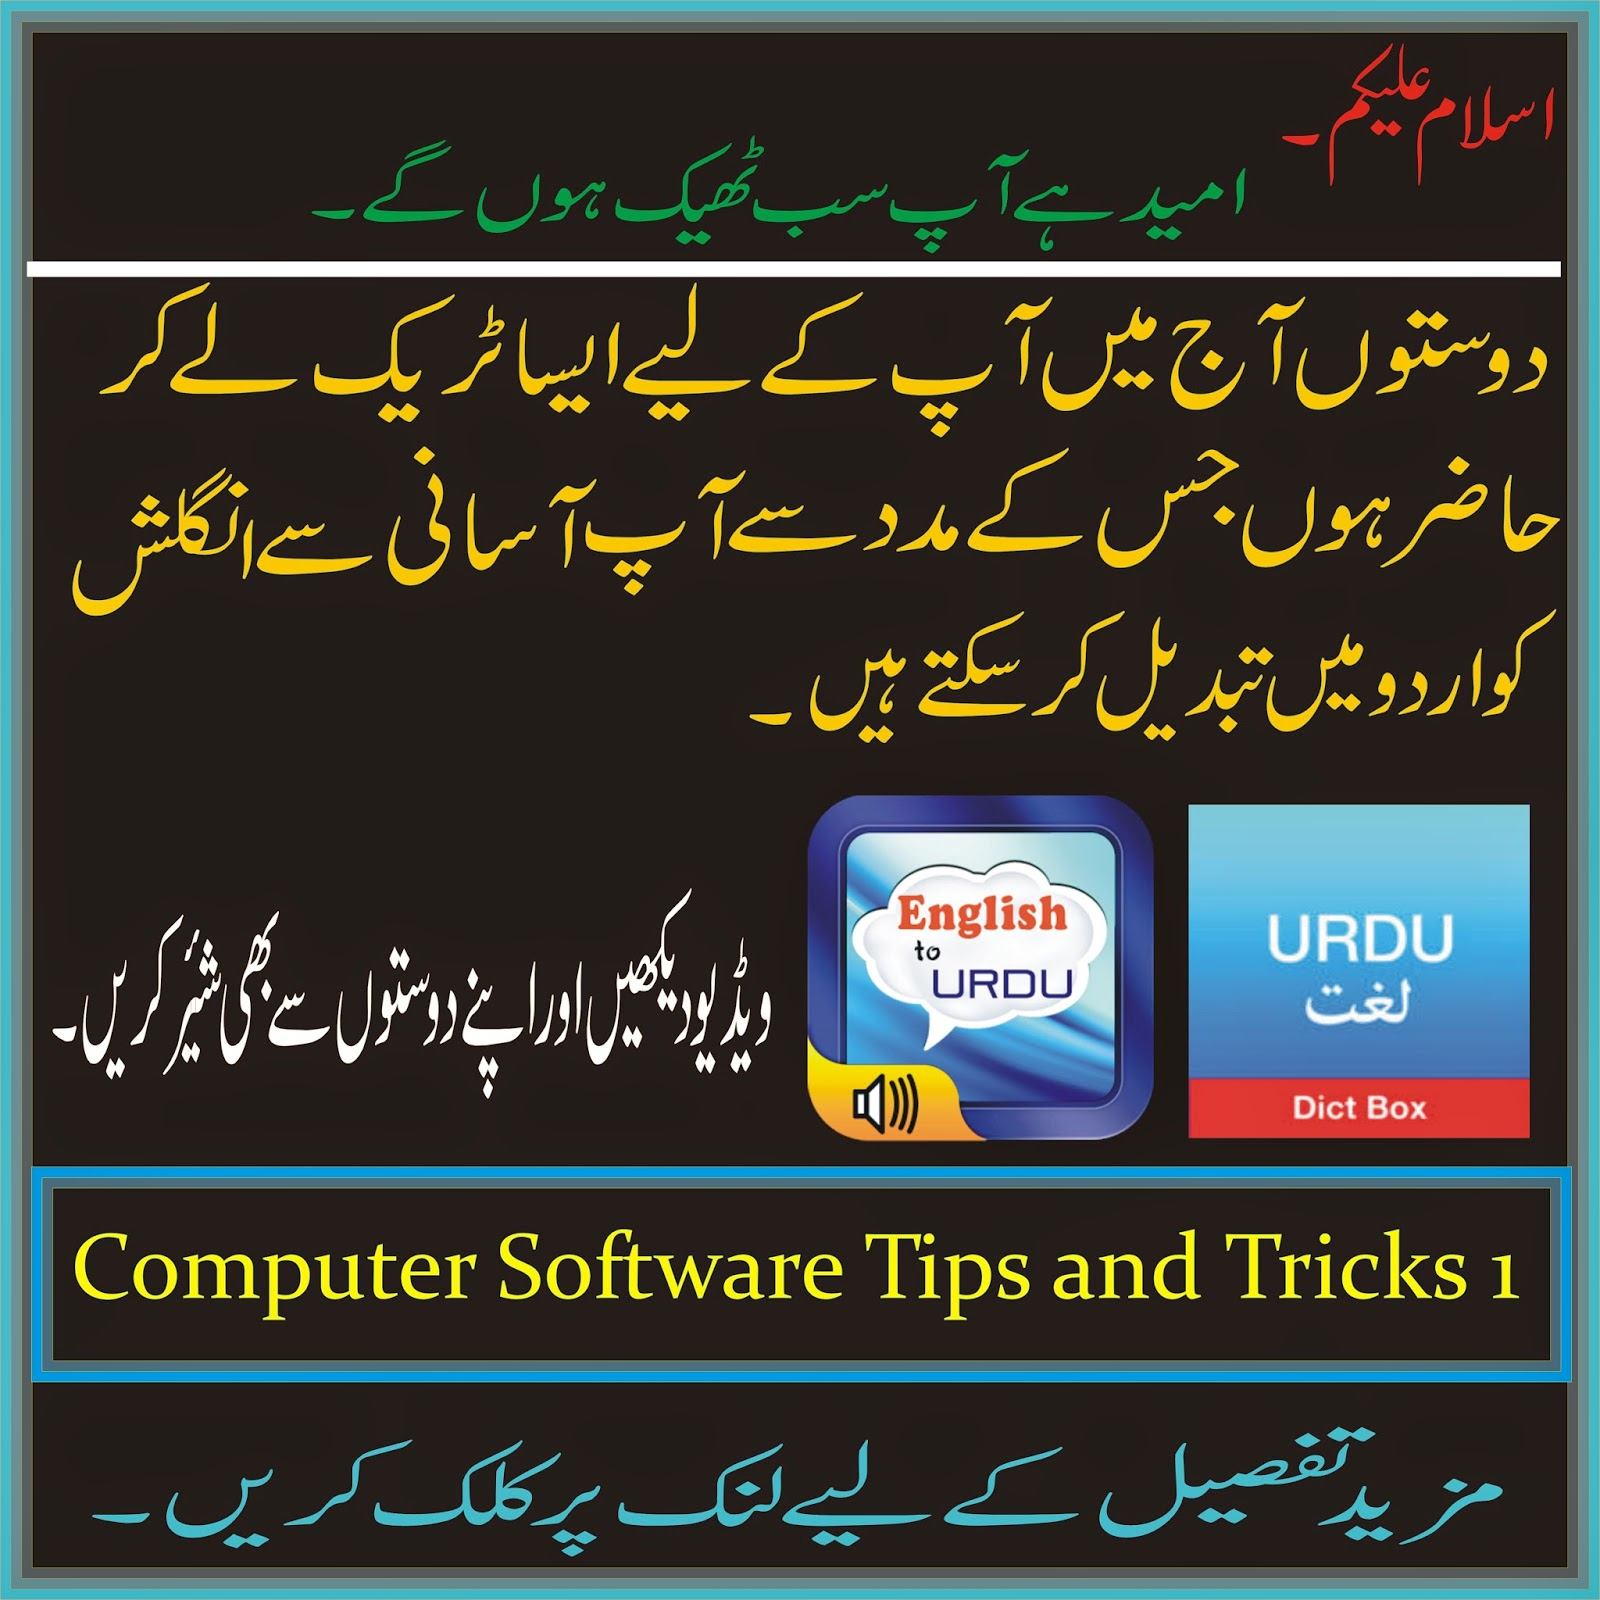 Online Urdu Calligraphy Converter English To Urdu Converter By Computer Software Tips And Tricks